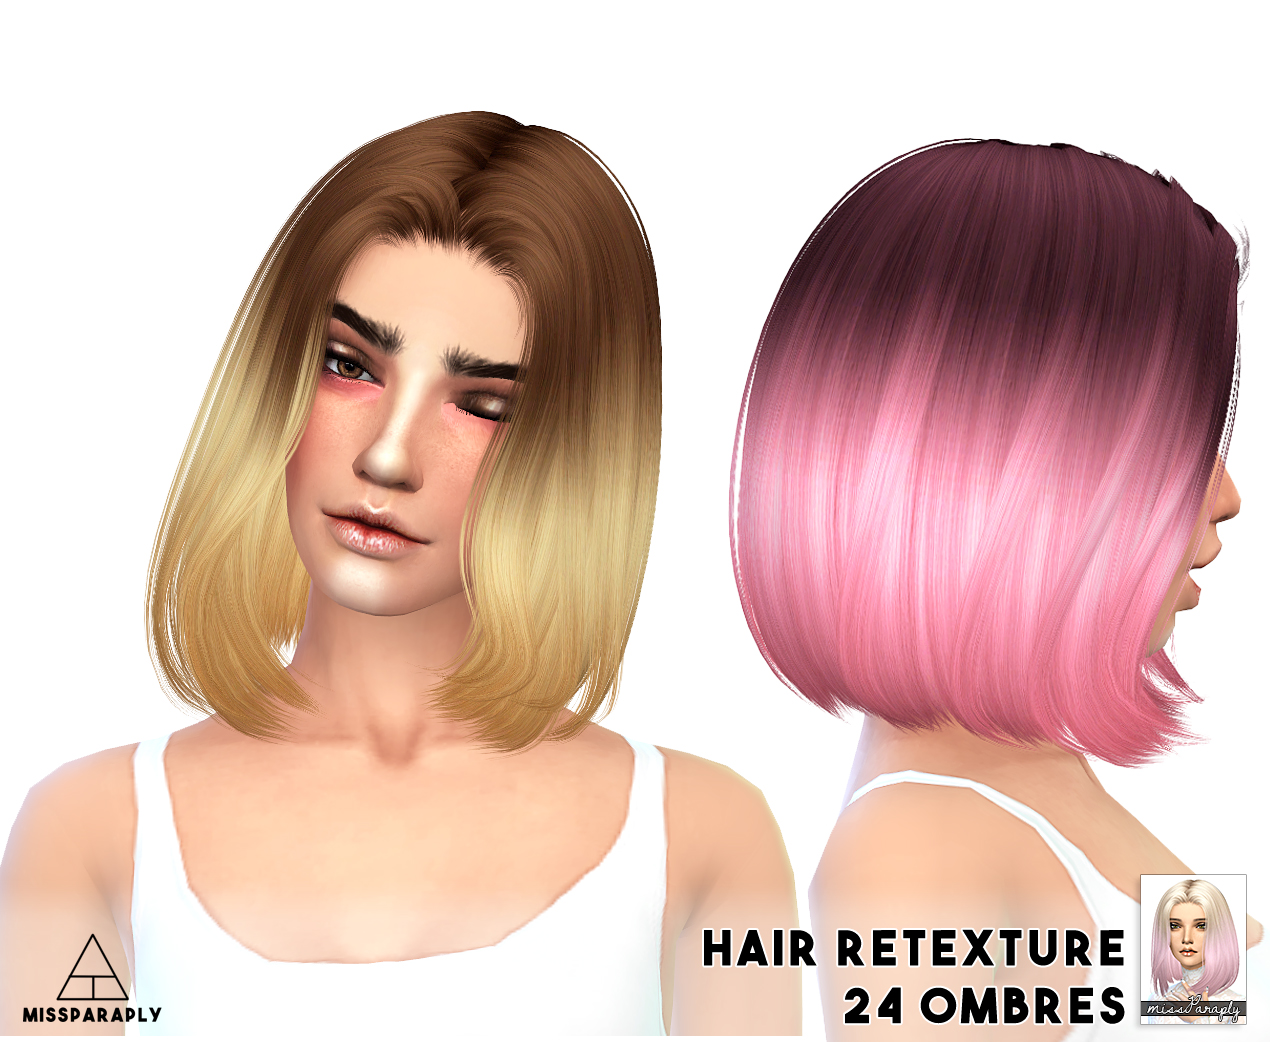 Sims 4 Hairs Miss Paraply 10 000 Followers